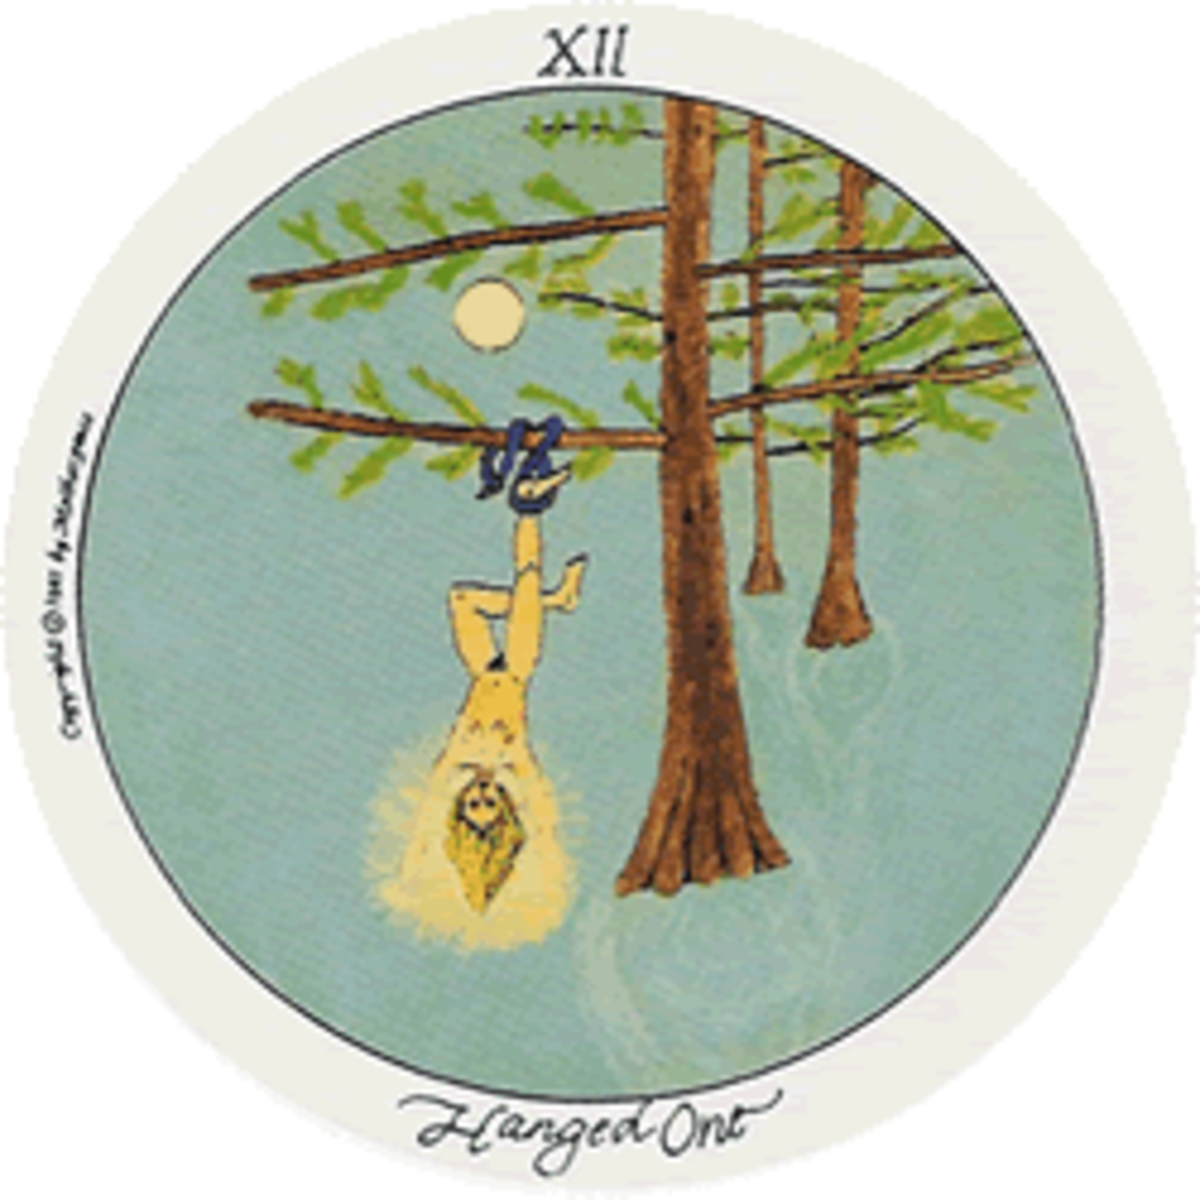 The Hanged One (usually called The Hanged Man in other Tarot decks) is looking at life from another perspective, to grow spiritually